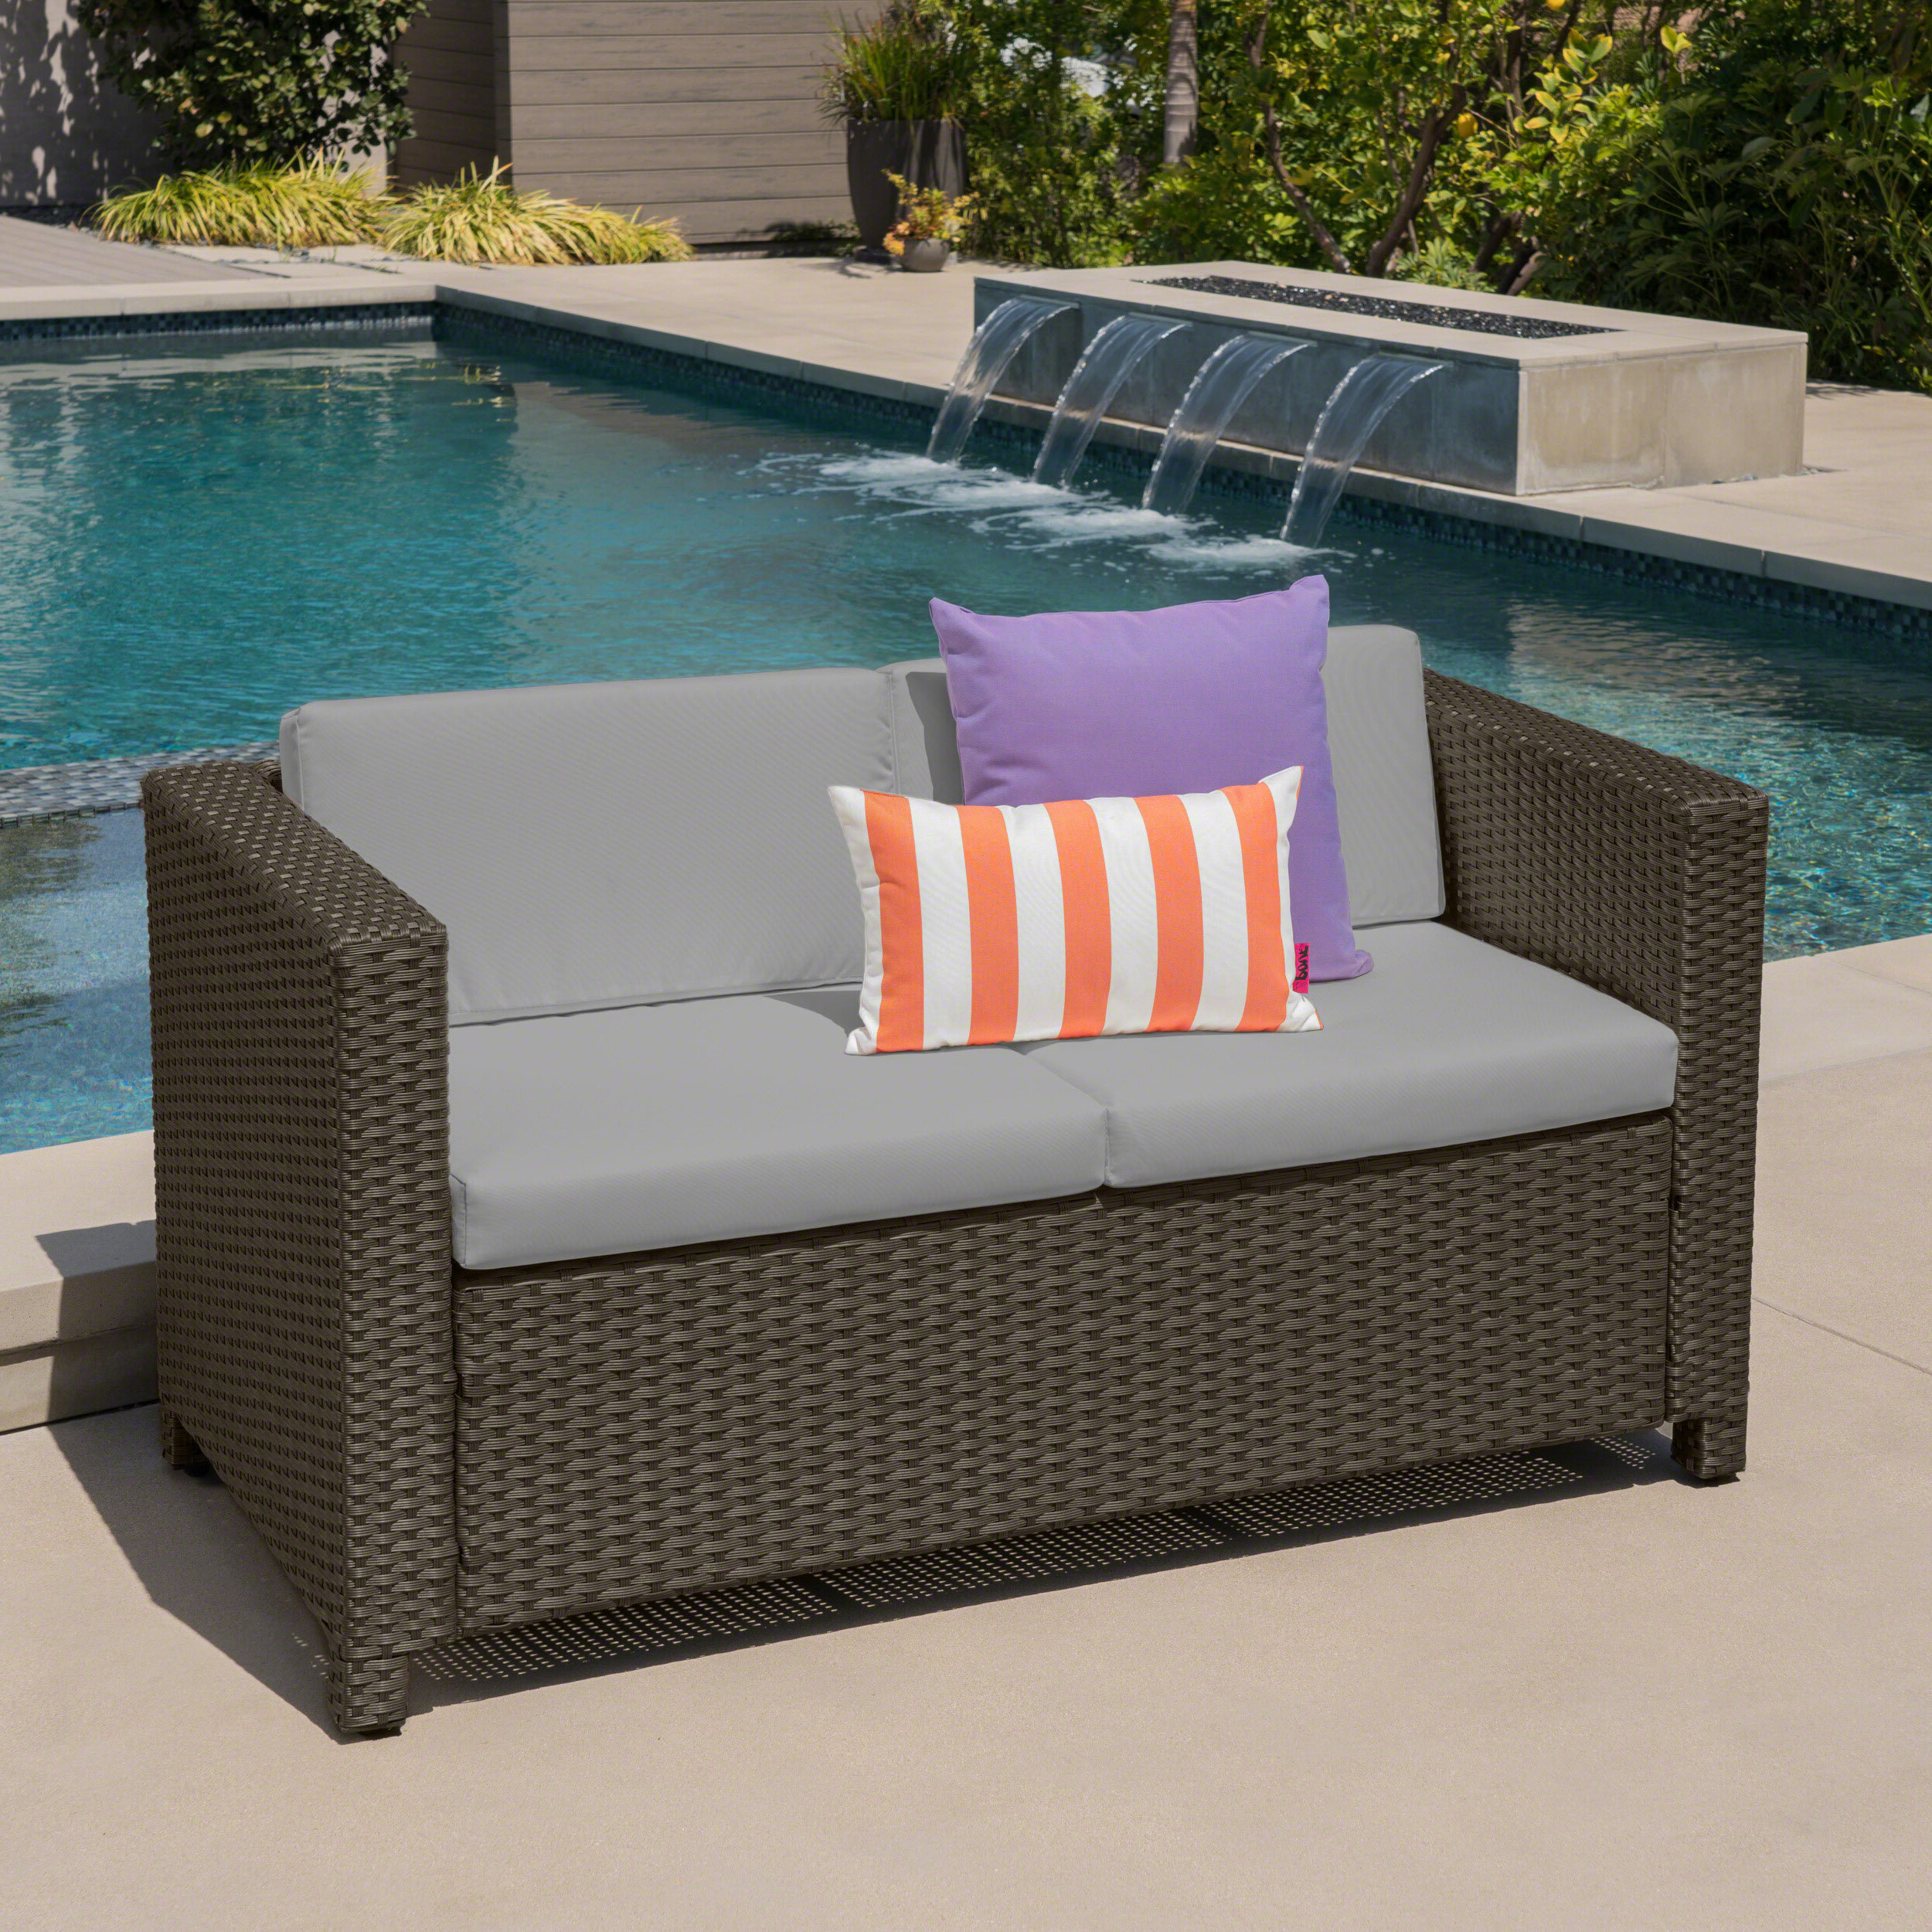 Furst Patio Sofas With Cushion Intended For Newest Furst Outdoor Loveseat With Cushions (View 3 of 20)